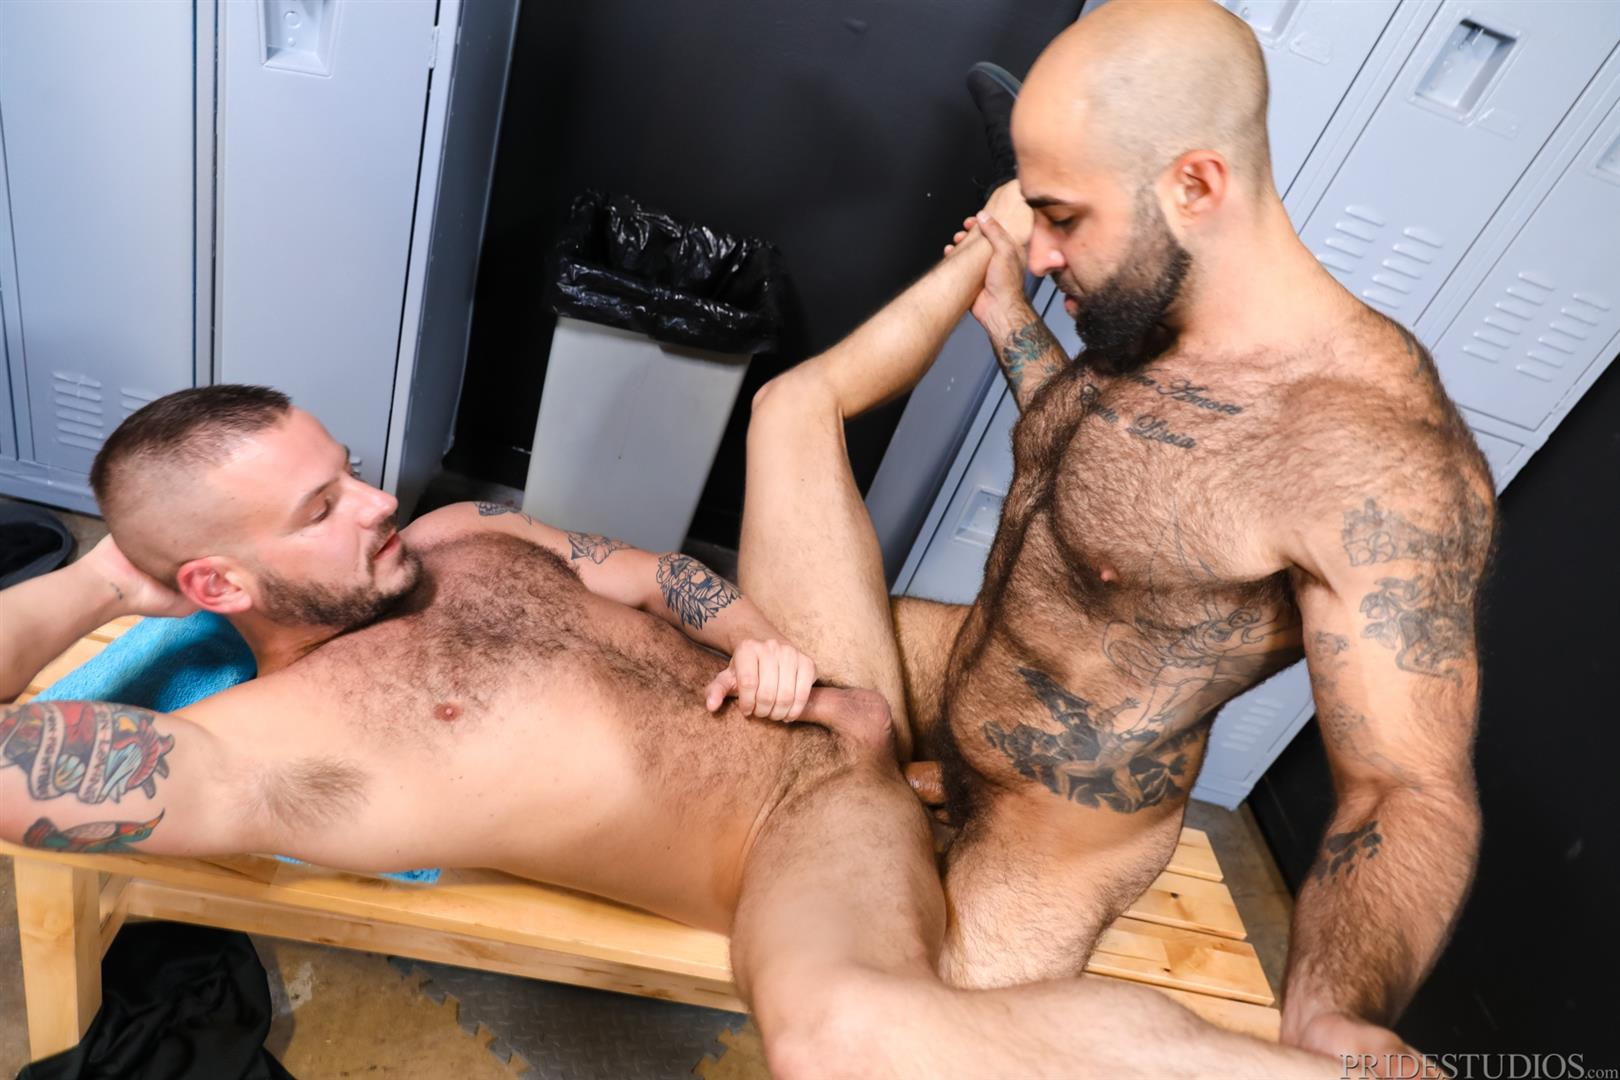 Men-Over-30-Sean-Harding-and-Atlas-Grant-Hairy-Muscle-Bareback-Gay-Sex-Video-14 Getting Fucked By A Big Uncut Cock Hairy Muscle Hunk In The Gym Locker Room